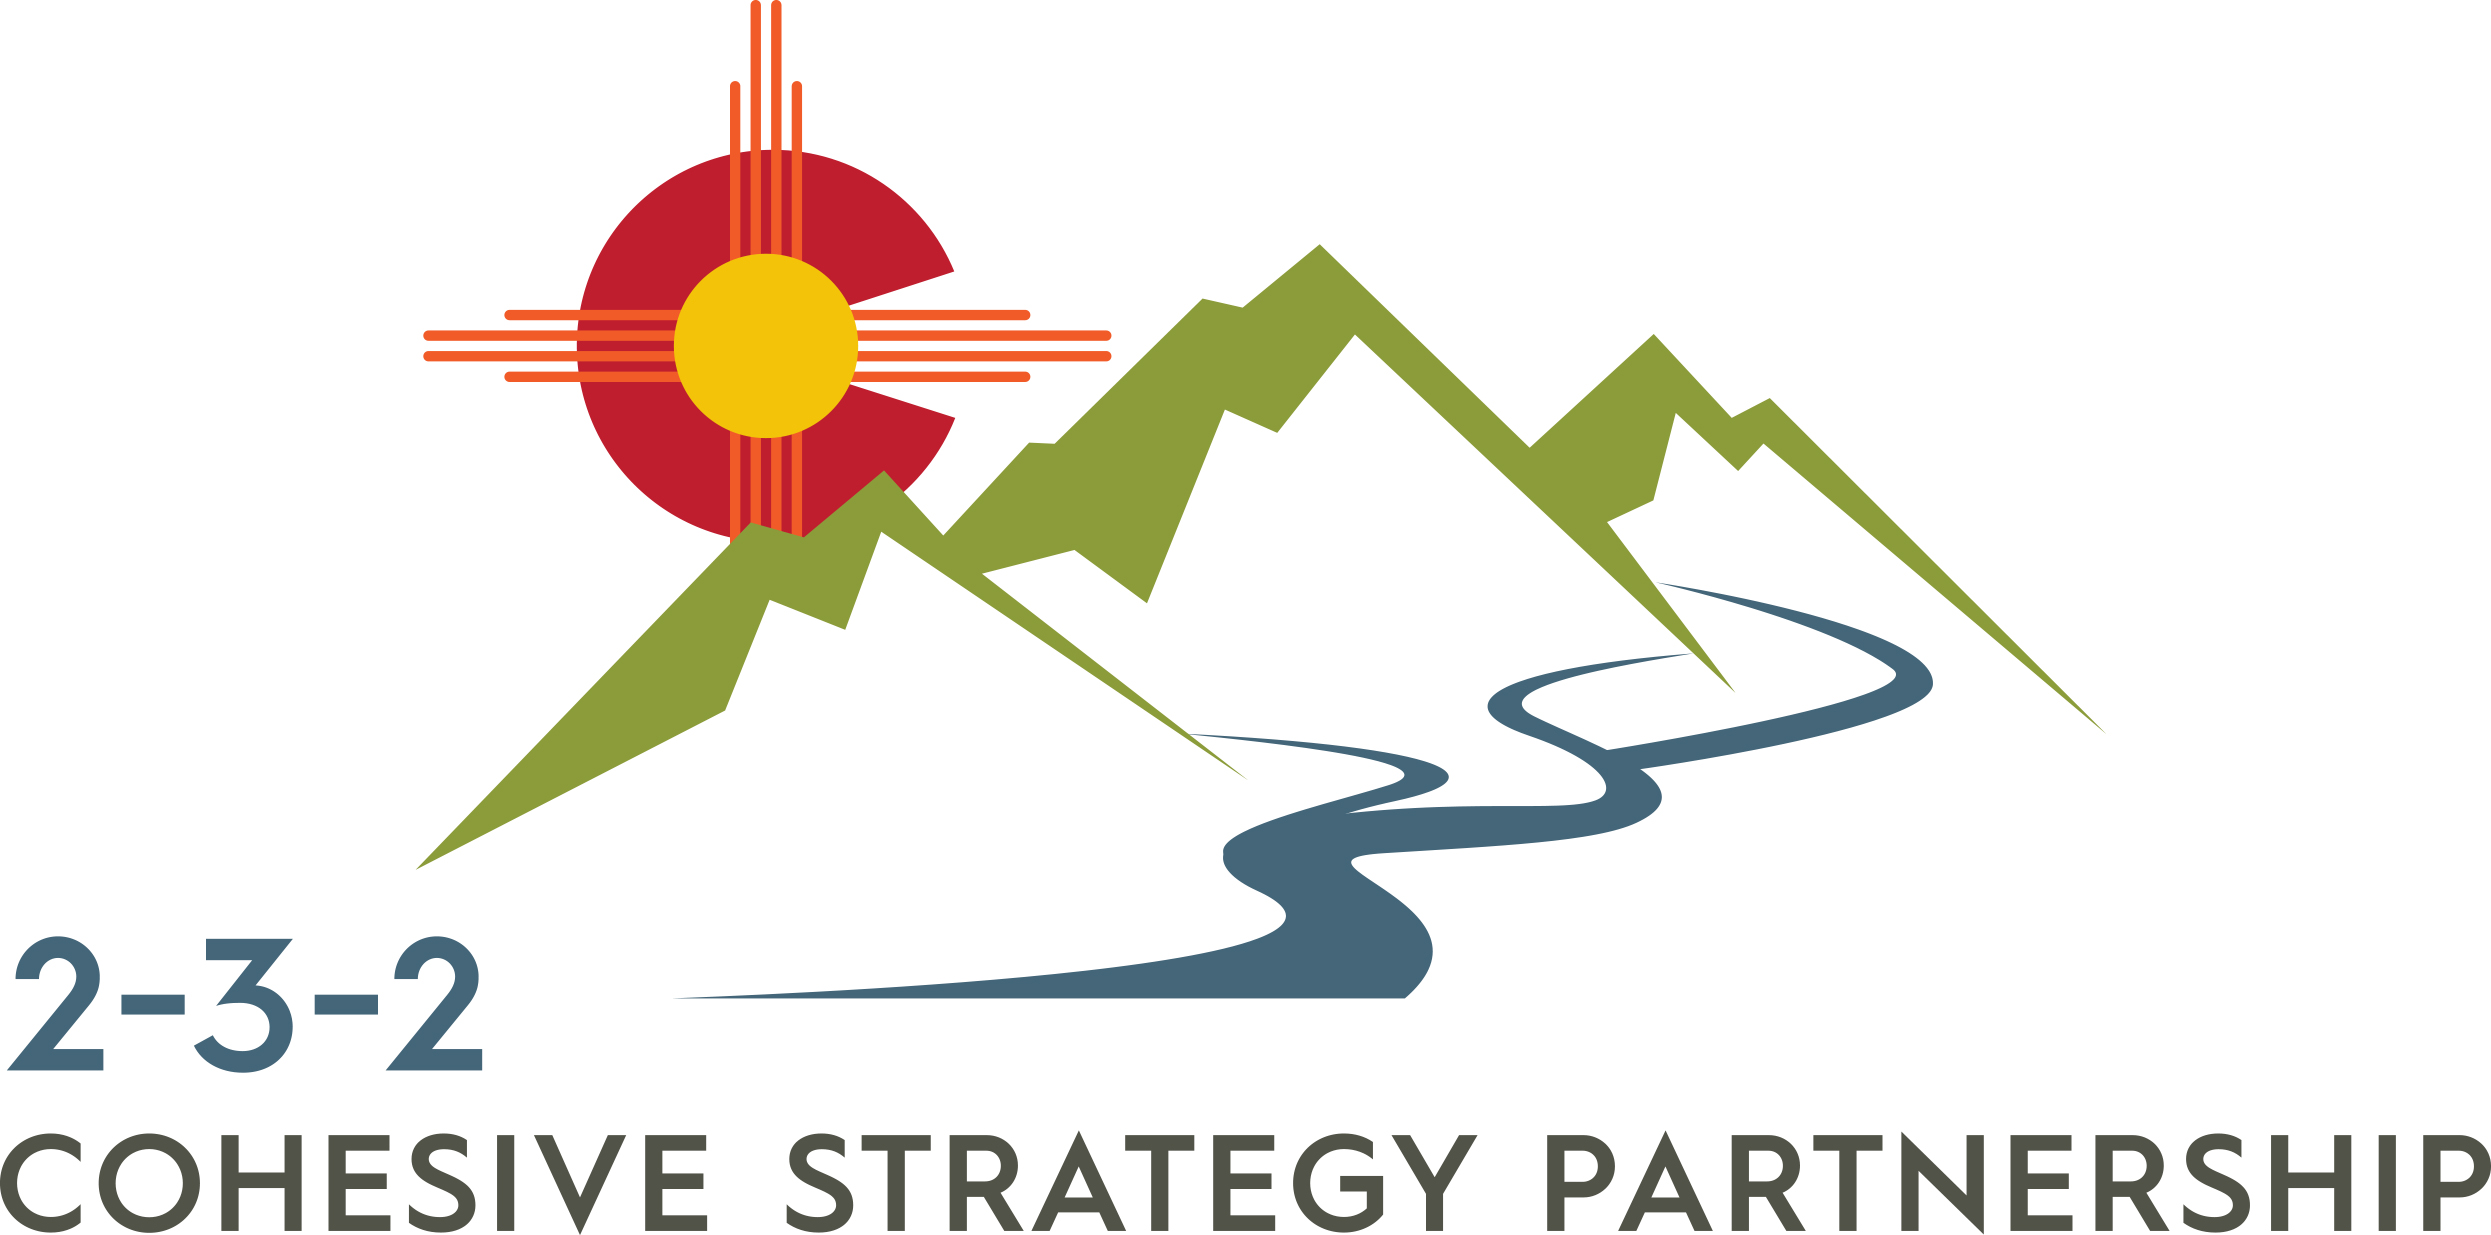 2-3-2 Cohesive Strategy Partnership – Two watersheds, three